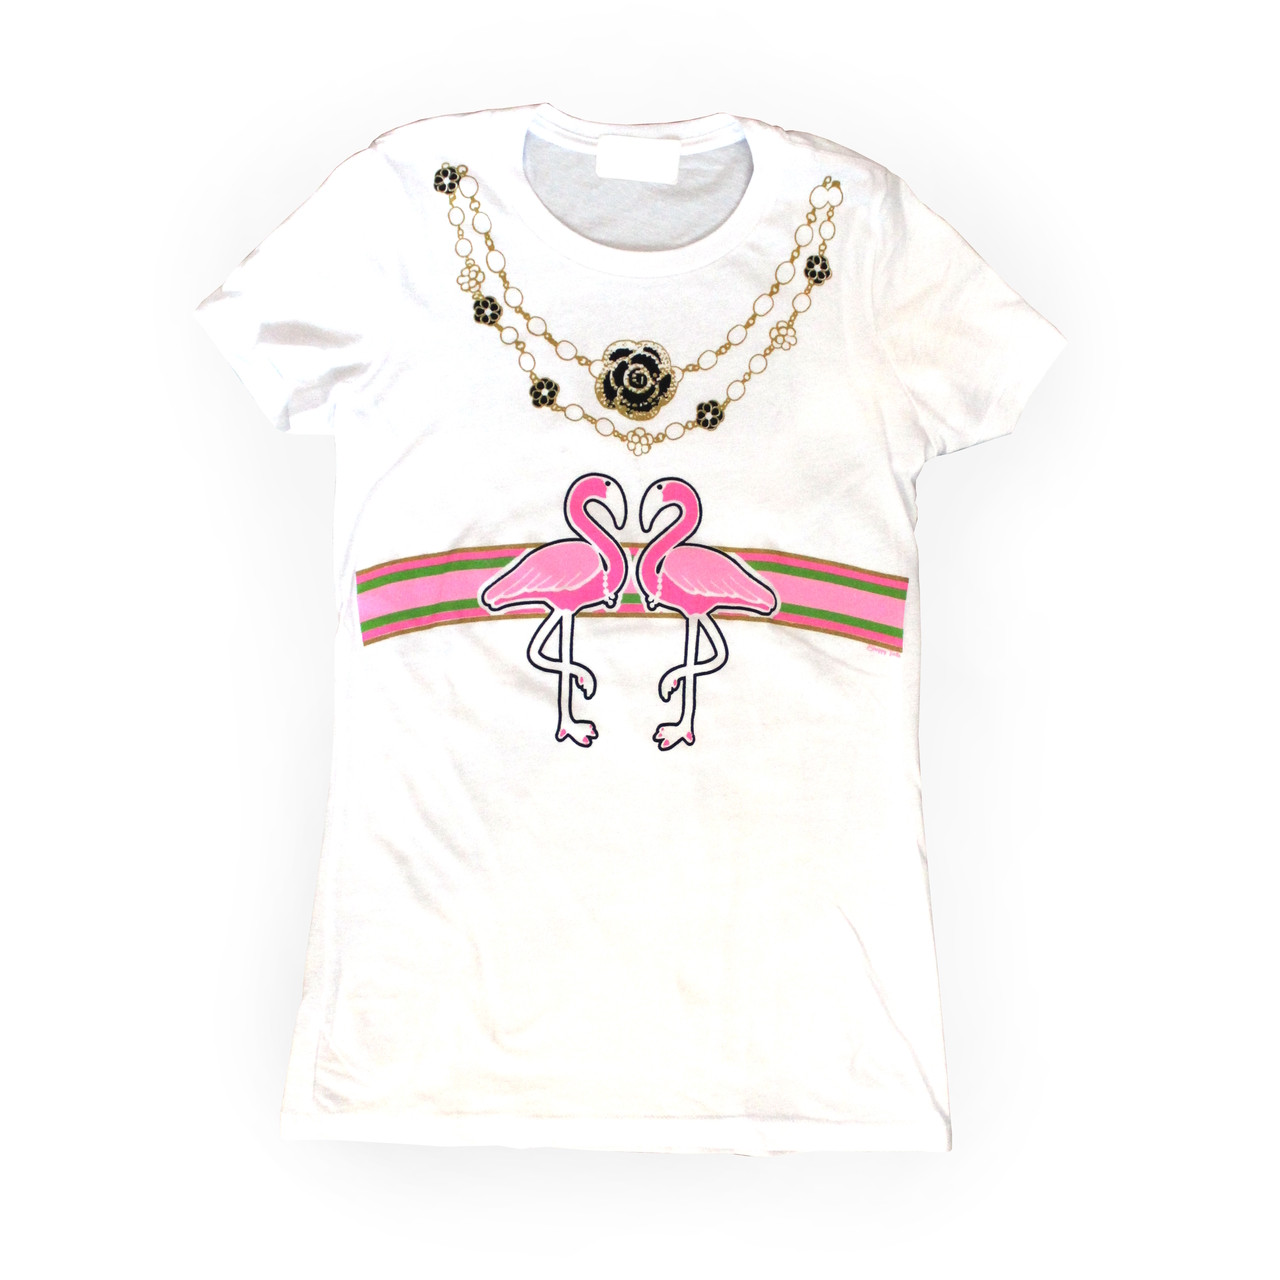 gucci tee. flamingo-a-gucci fitted short sleeve tee gucci r